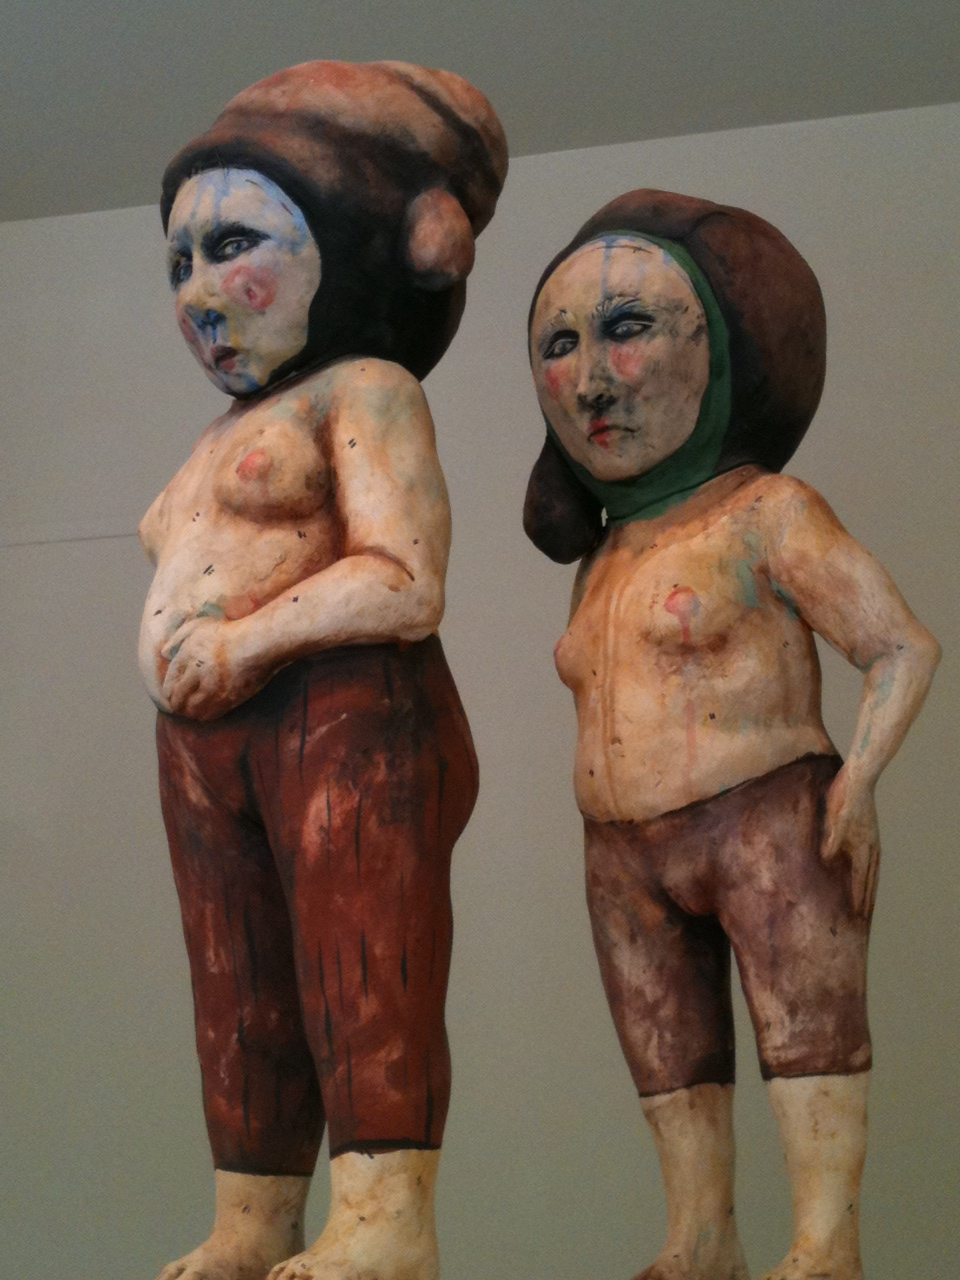 james tisdale ceramic sculpture of two figures